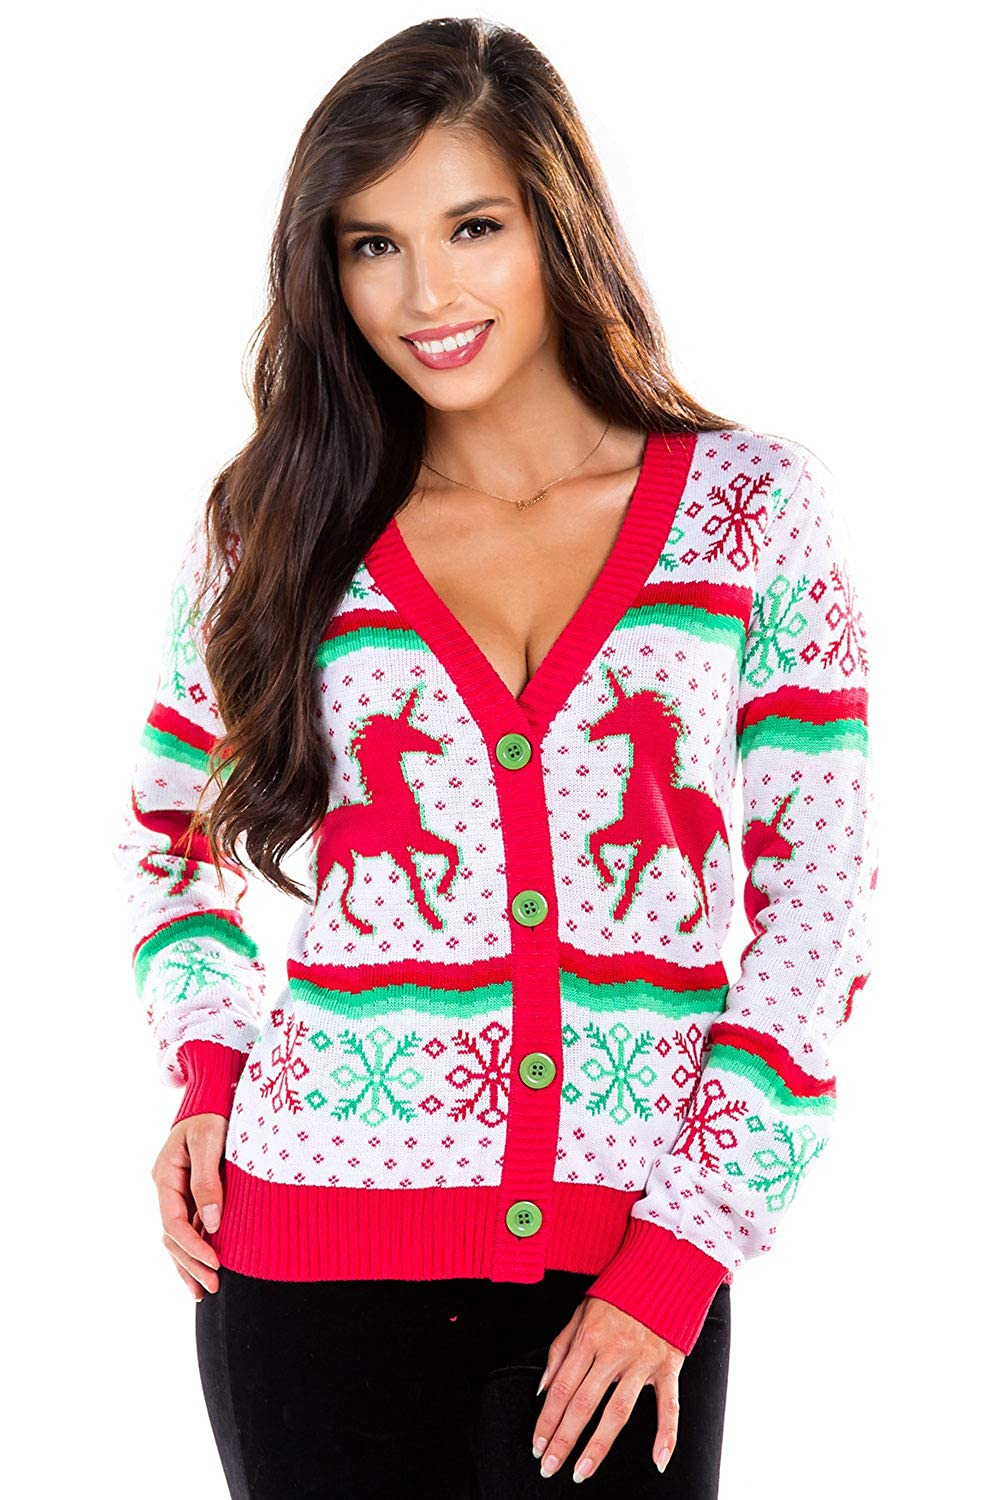 Tipsy Elves Women's Unicorn Ugly Christmas Sweater  White Cute Christmas Cardigan